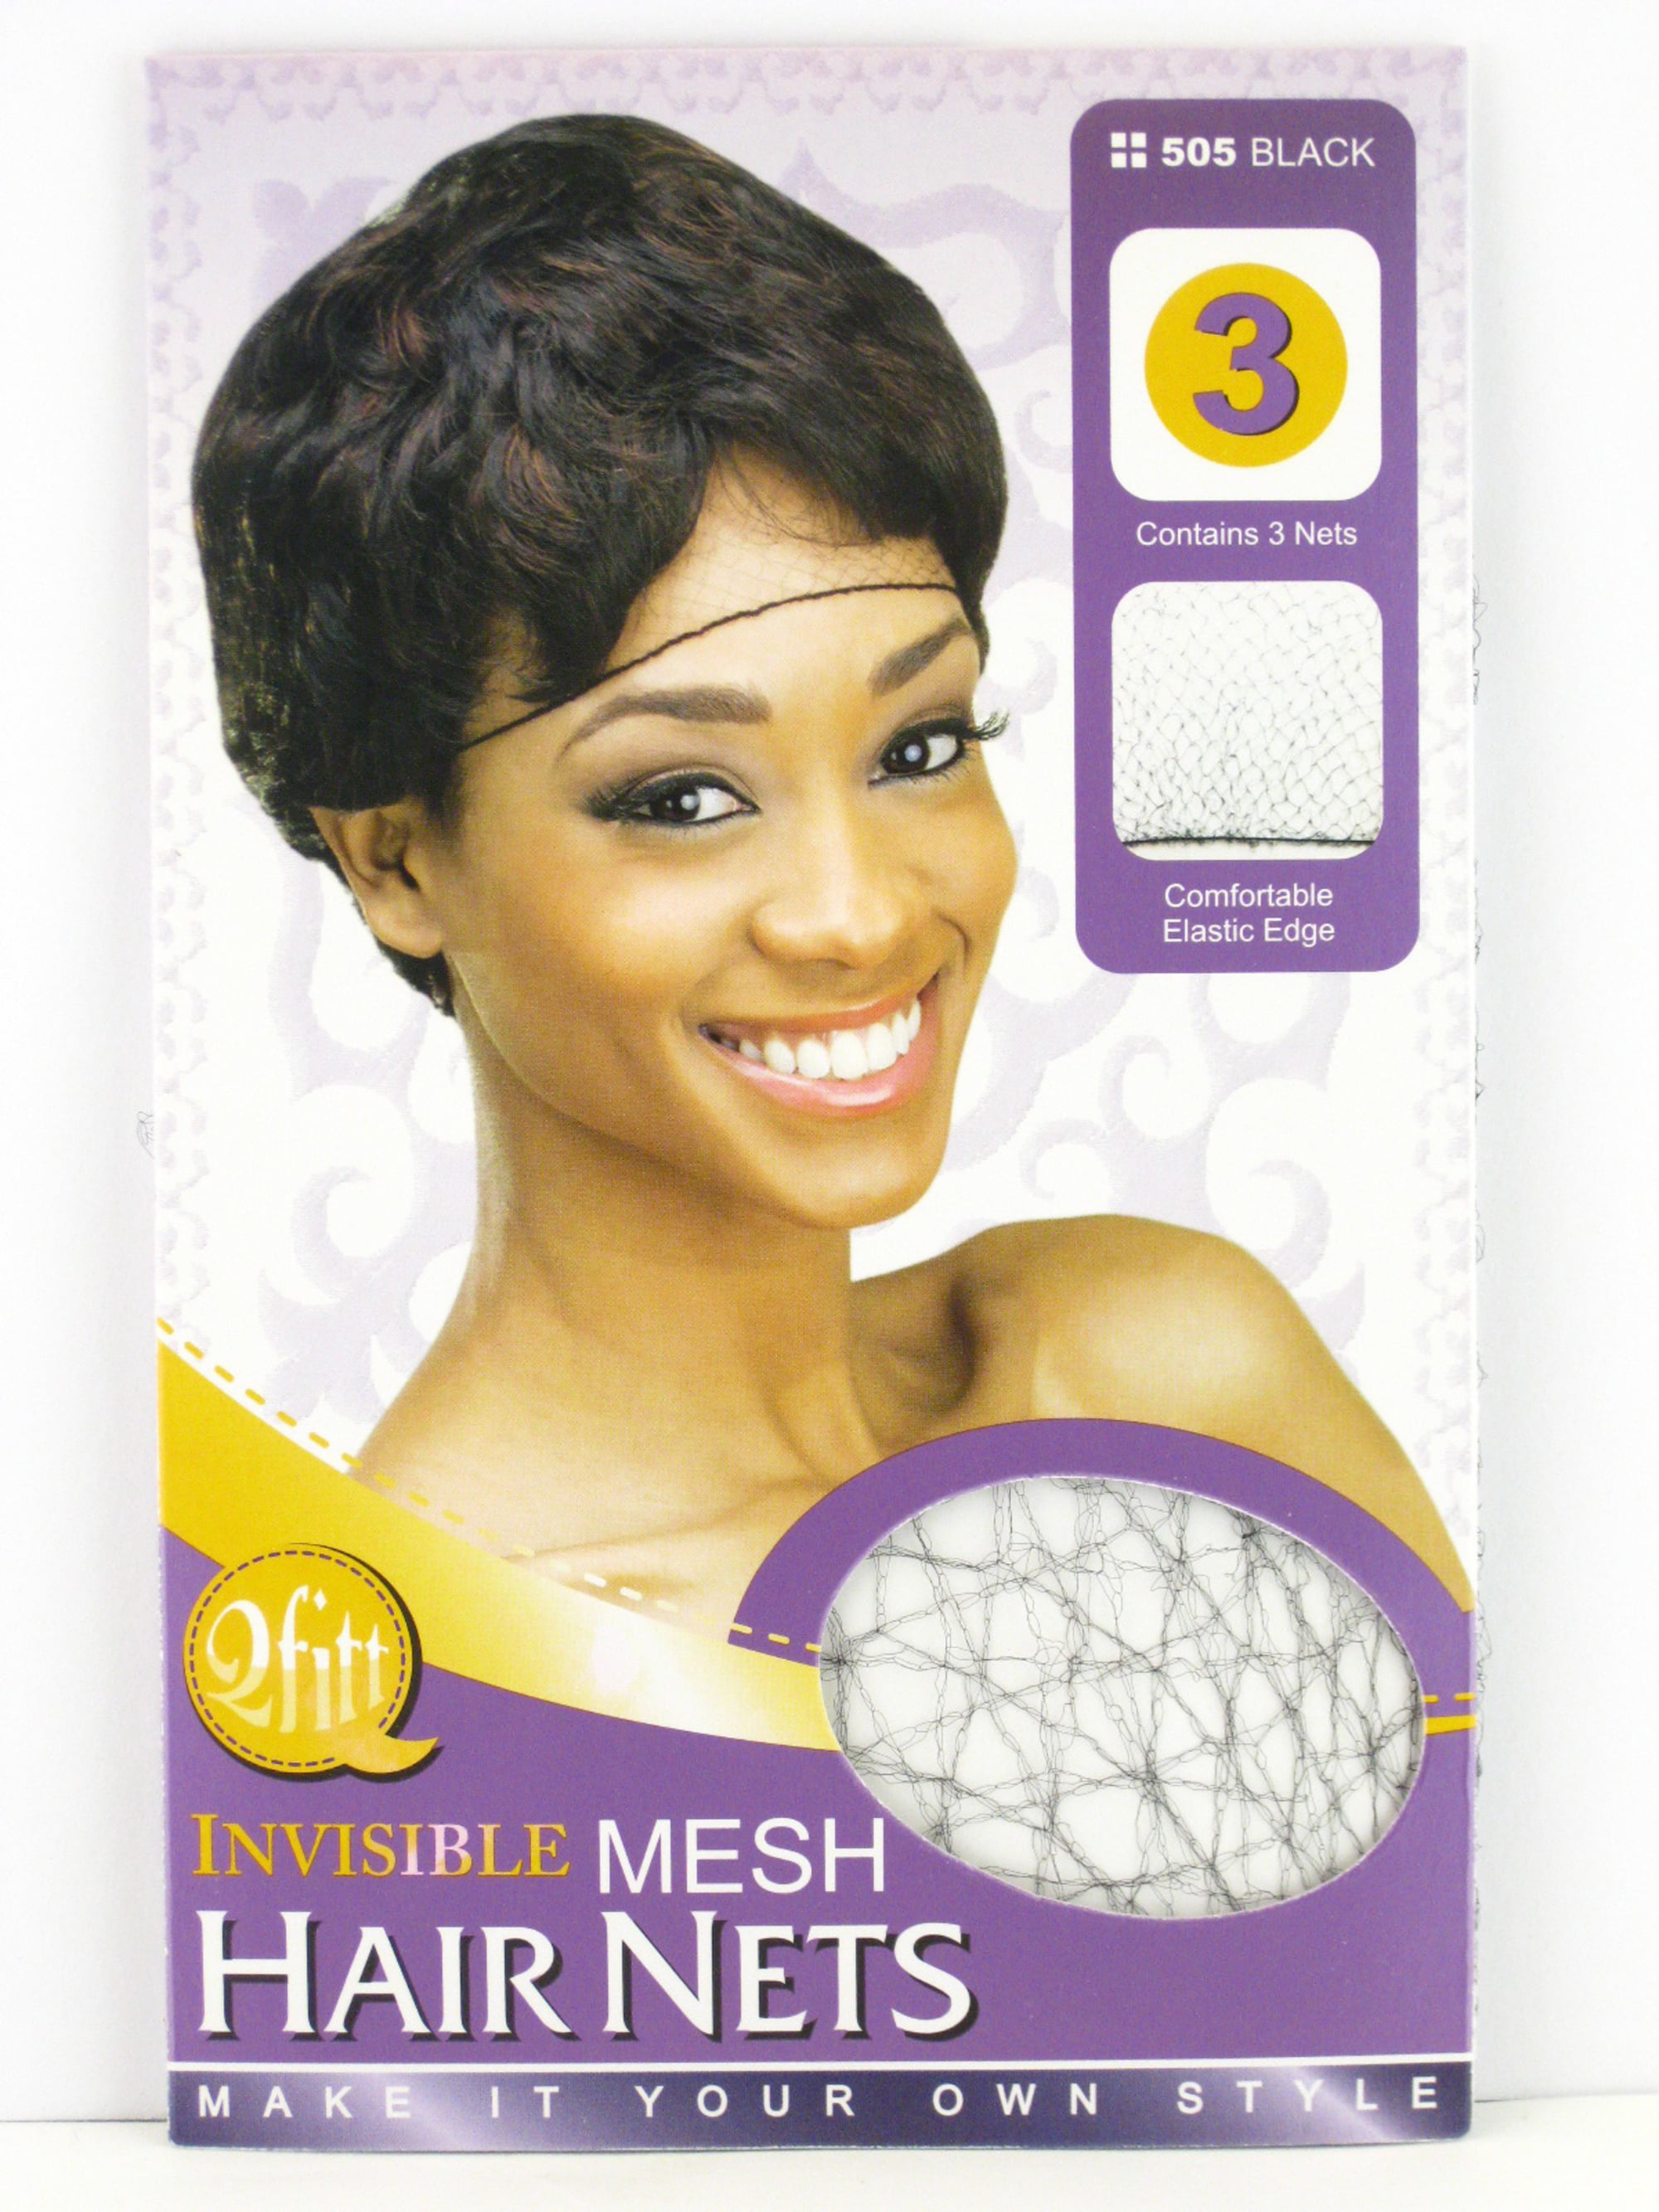 Qfitt Black Invisible Mesh Hair Nets 3 Pcs Walmart